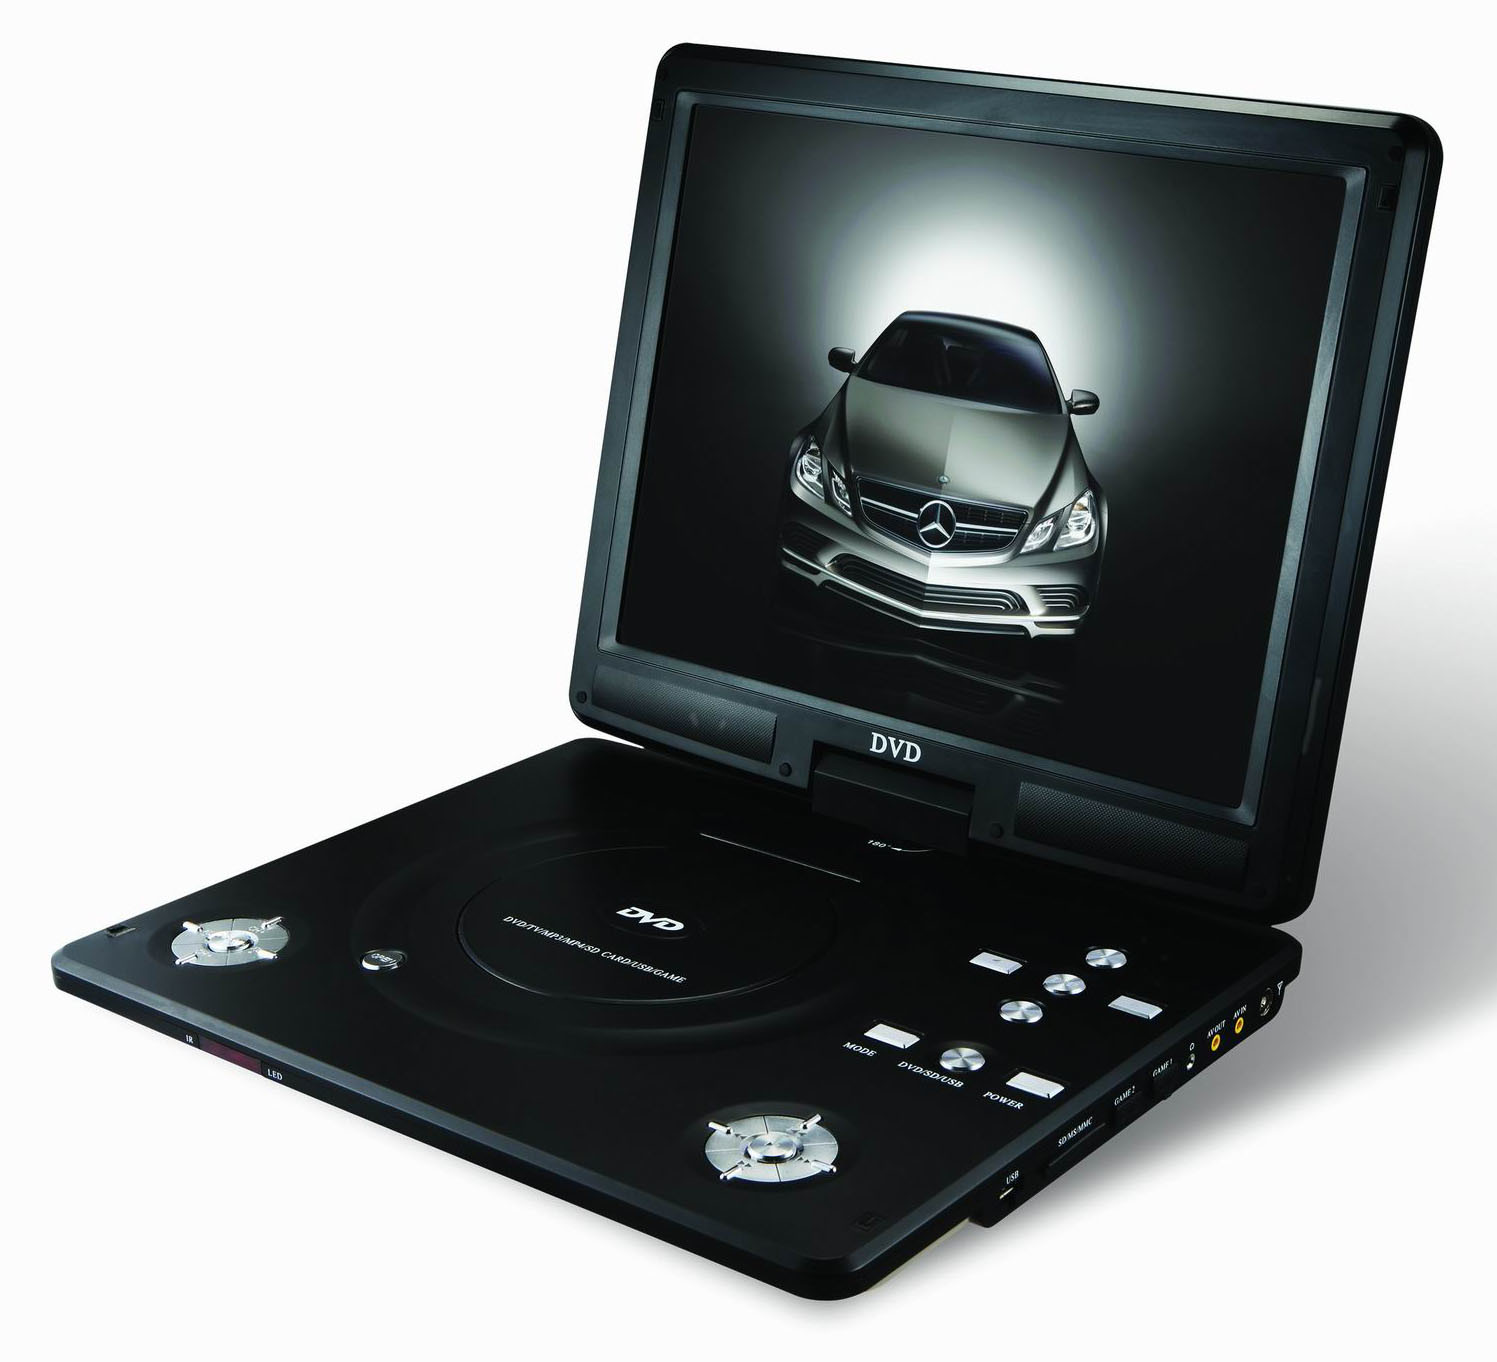 china 15 inch portable dvd player 1588 china portable dvd player portable dvd. Black Bedroom Furniture Sets. Home Design Ideas